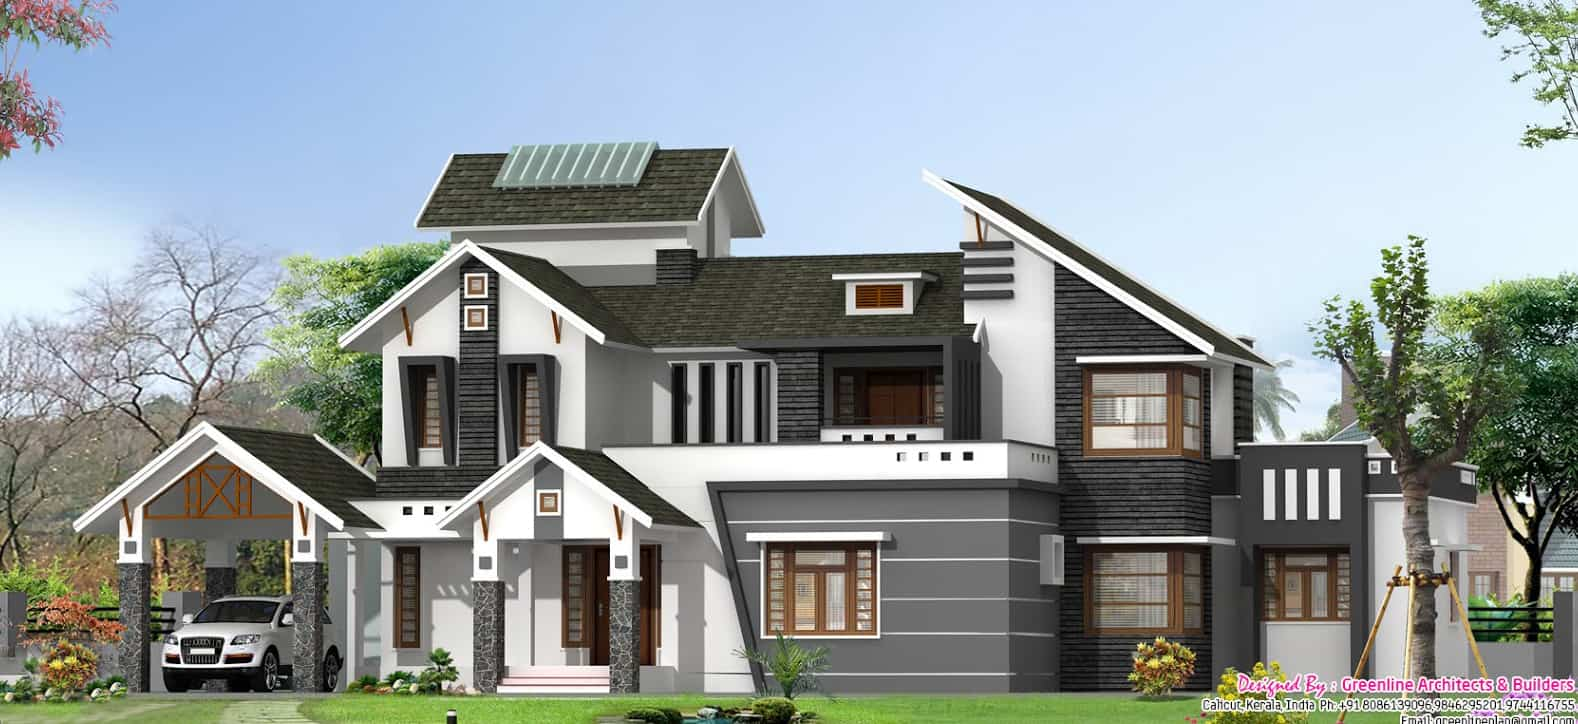 Unique house designs keralahouseplanner for Custom house ideas